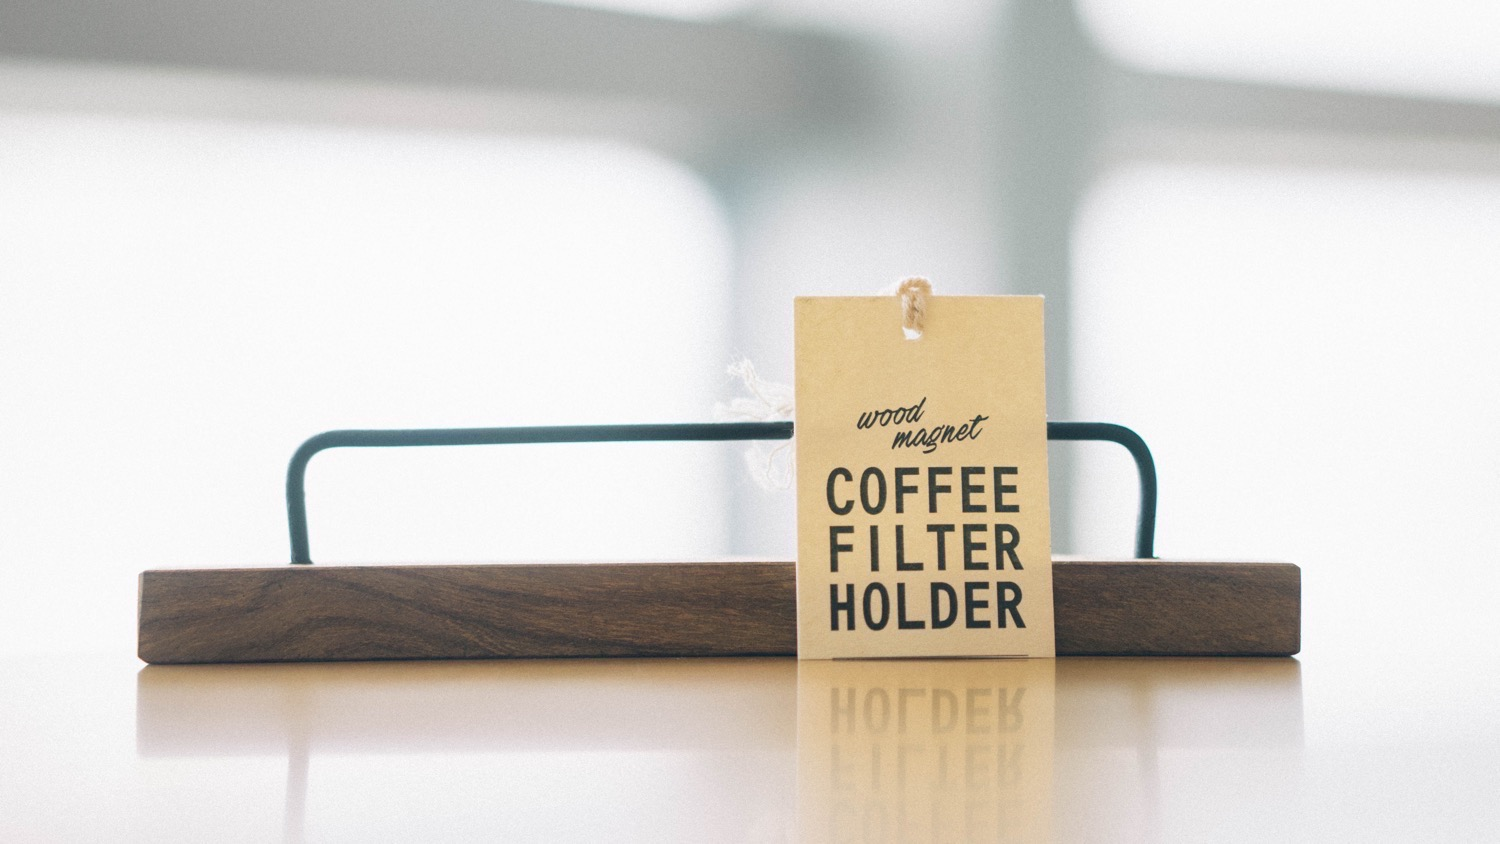 Coffee fileter holder 2